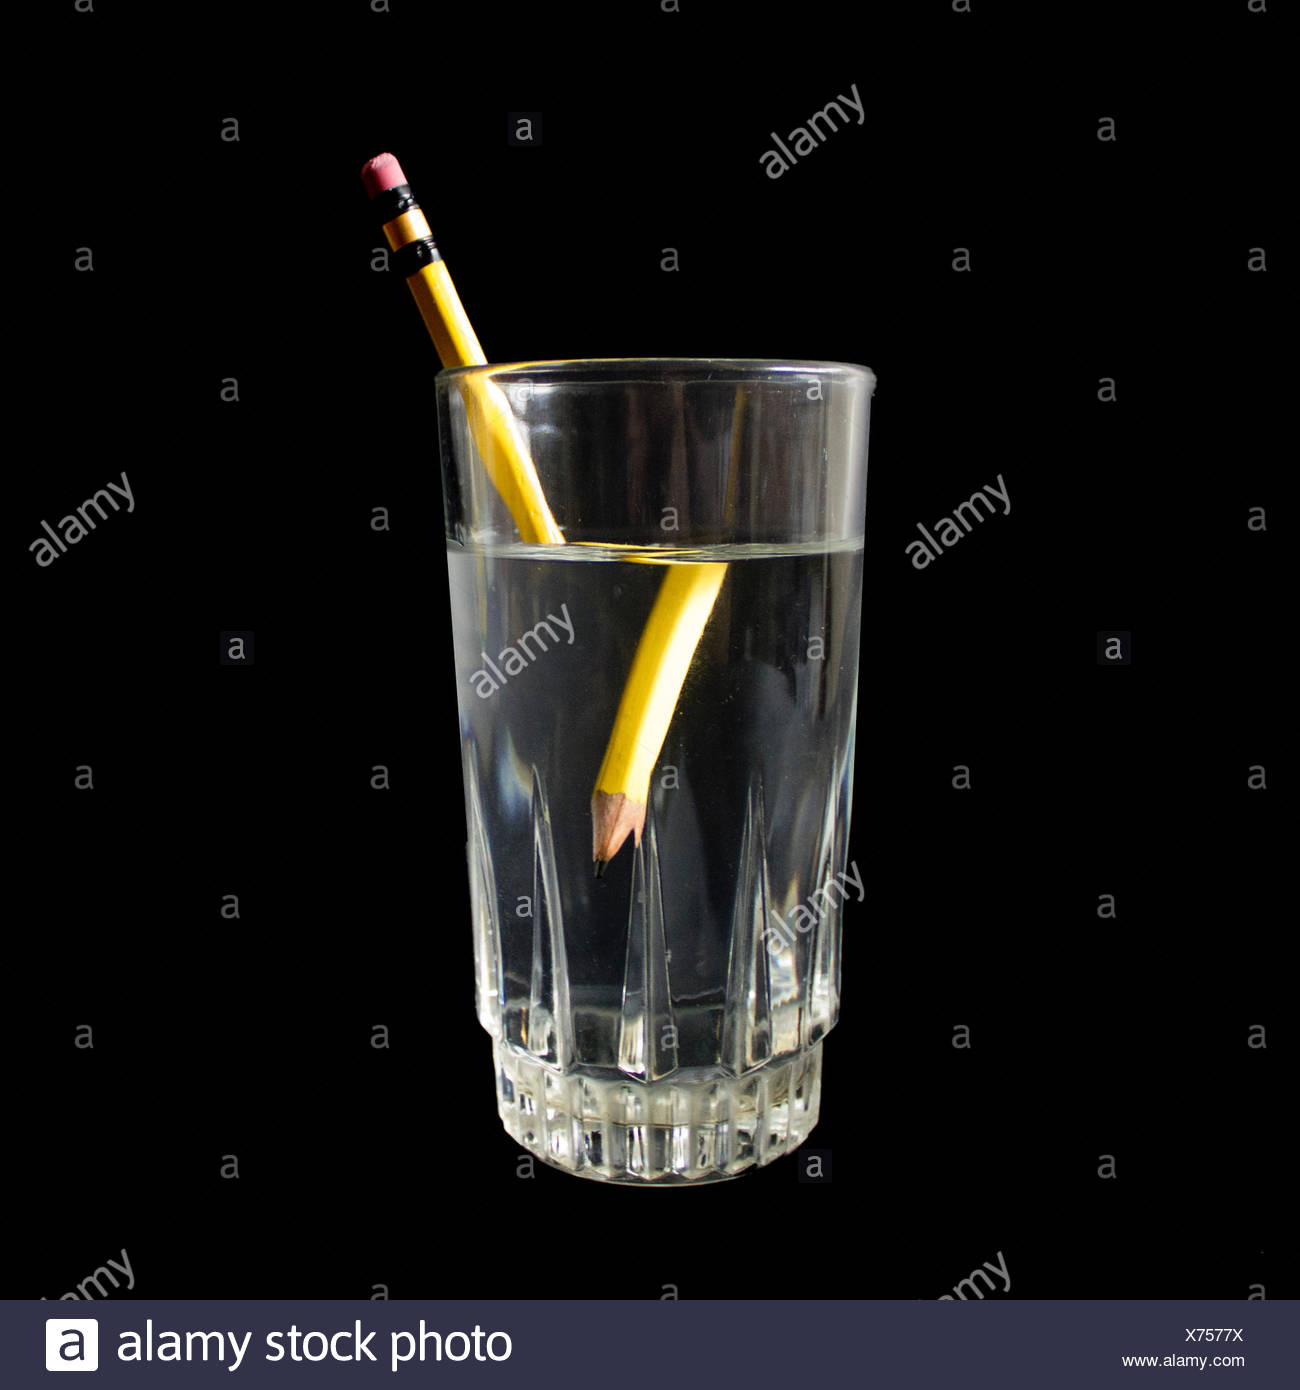 Distorted Pencil In A Glass Of Water - Stock Image